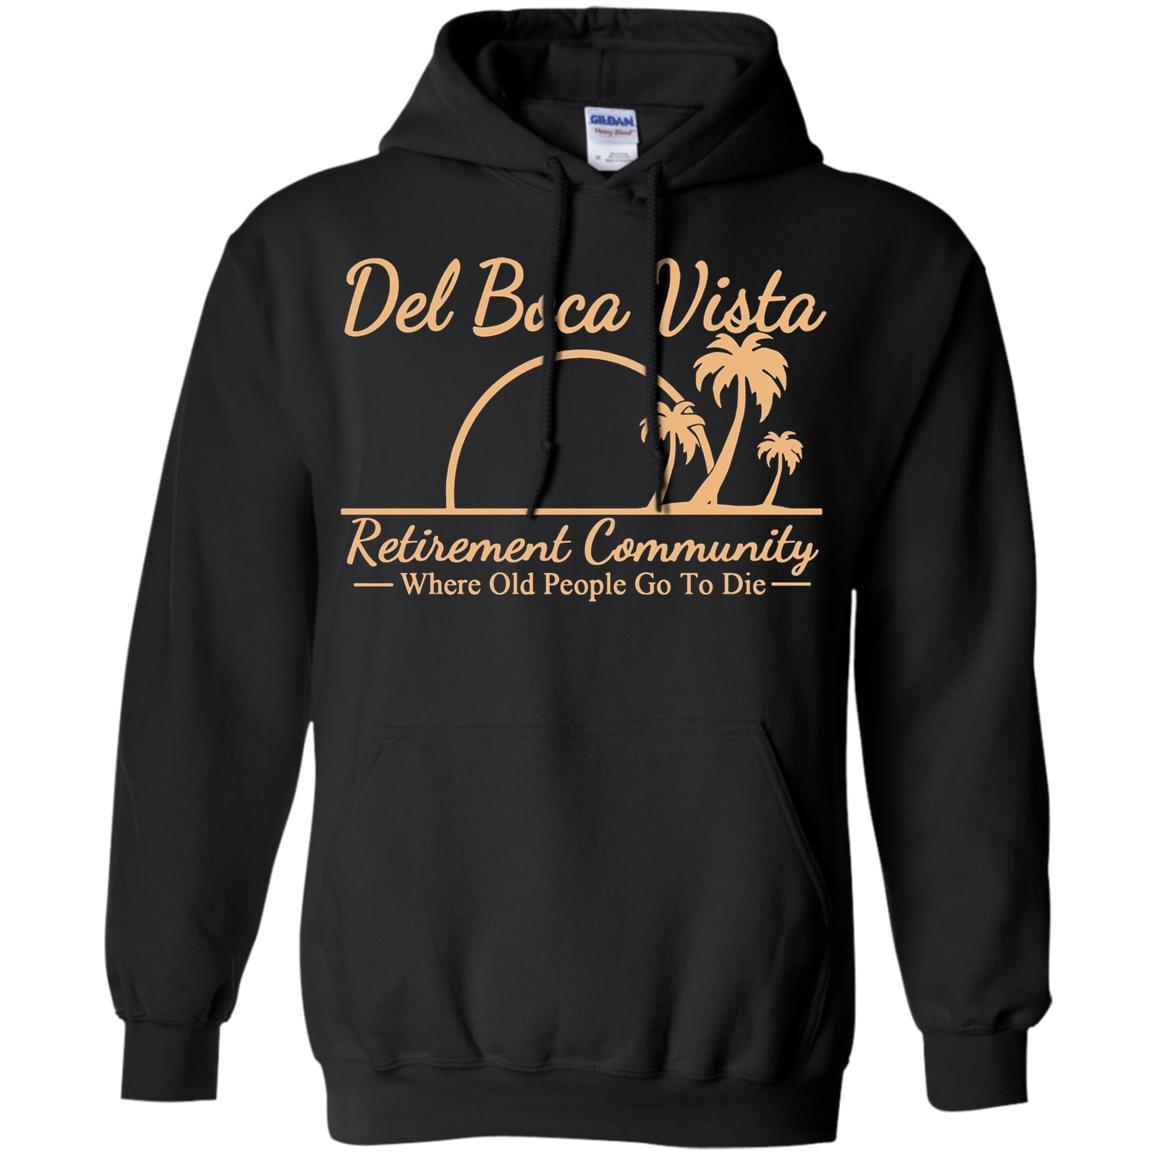 Del Boca Vista - Where old people go to die - Pullover Hoodie Black / 5XL